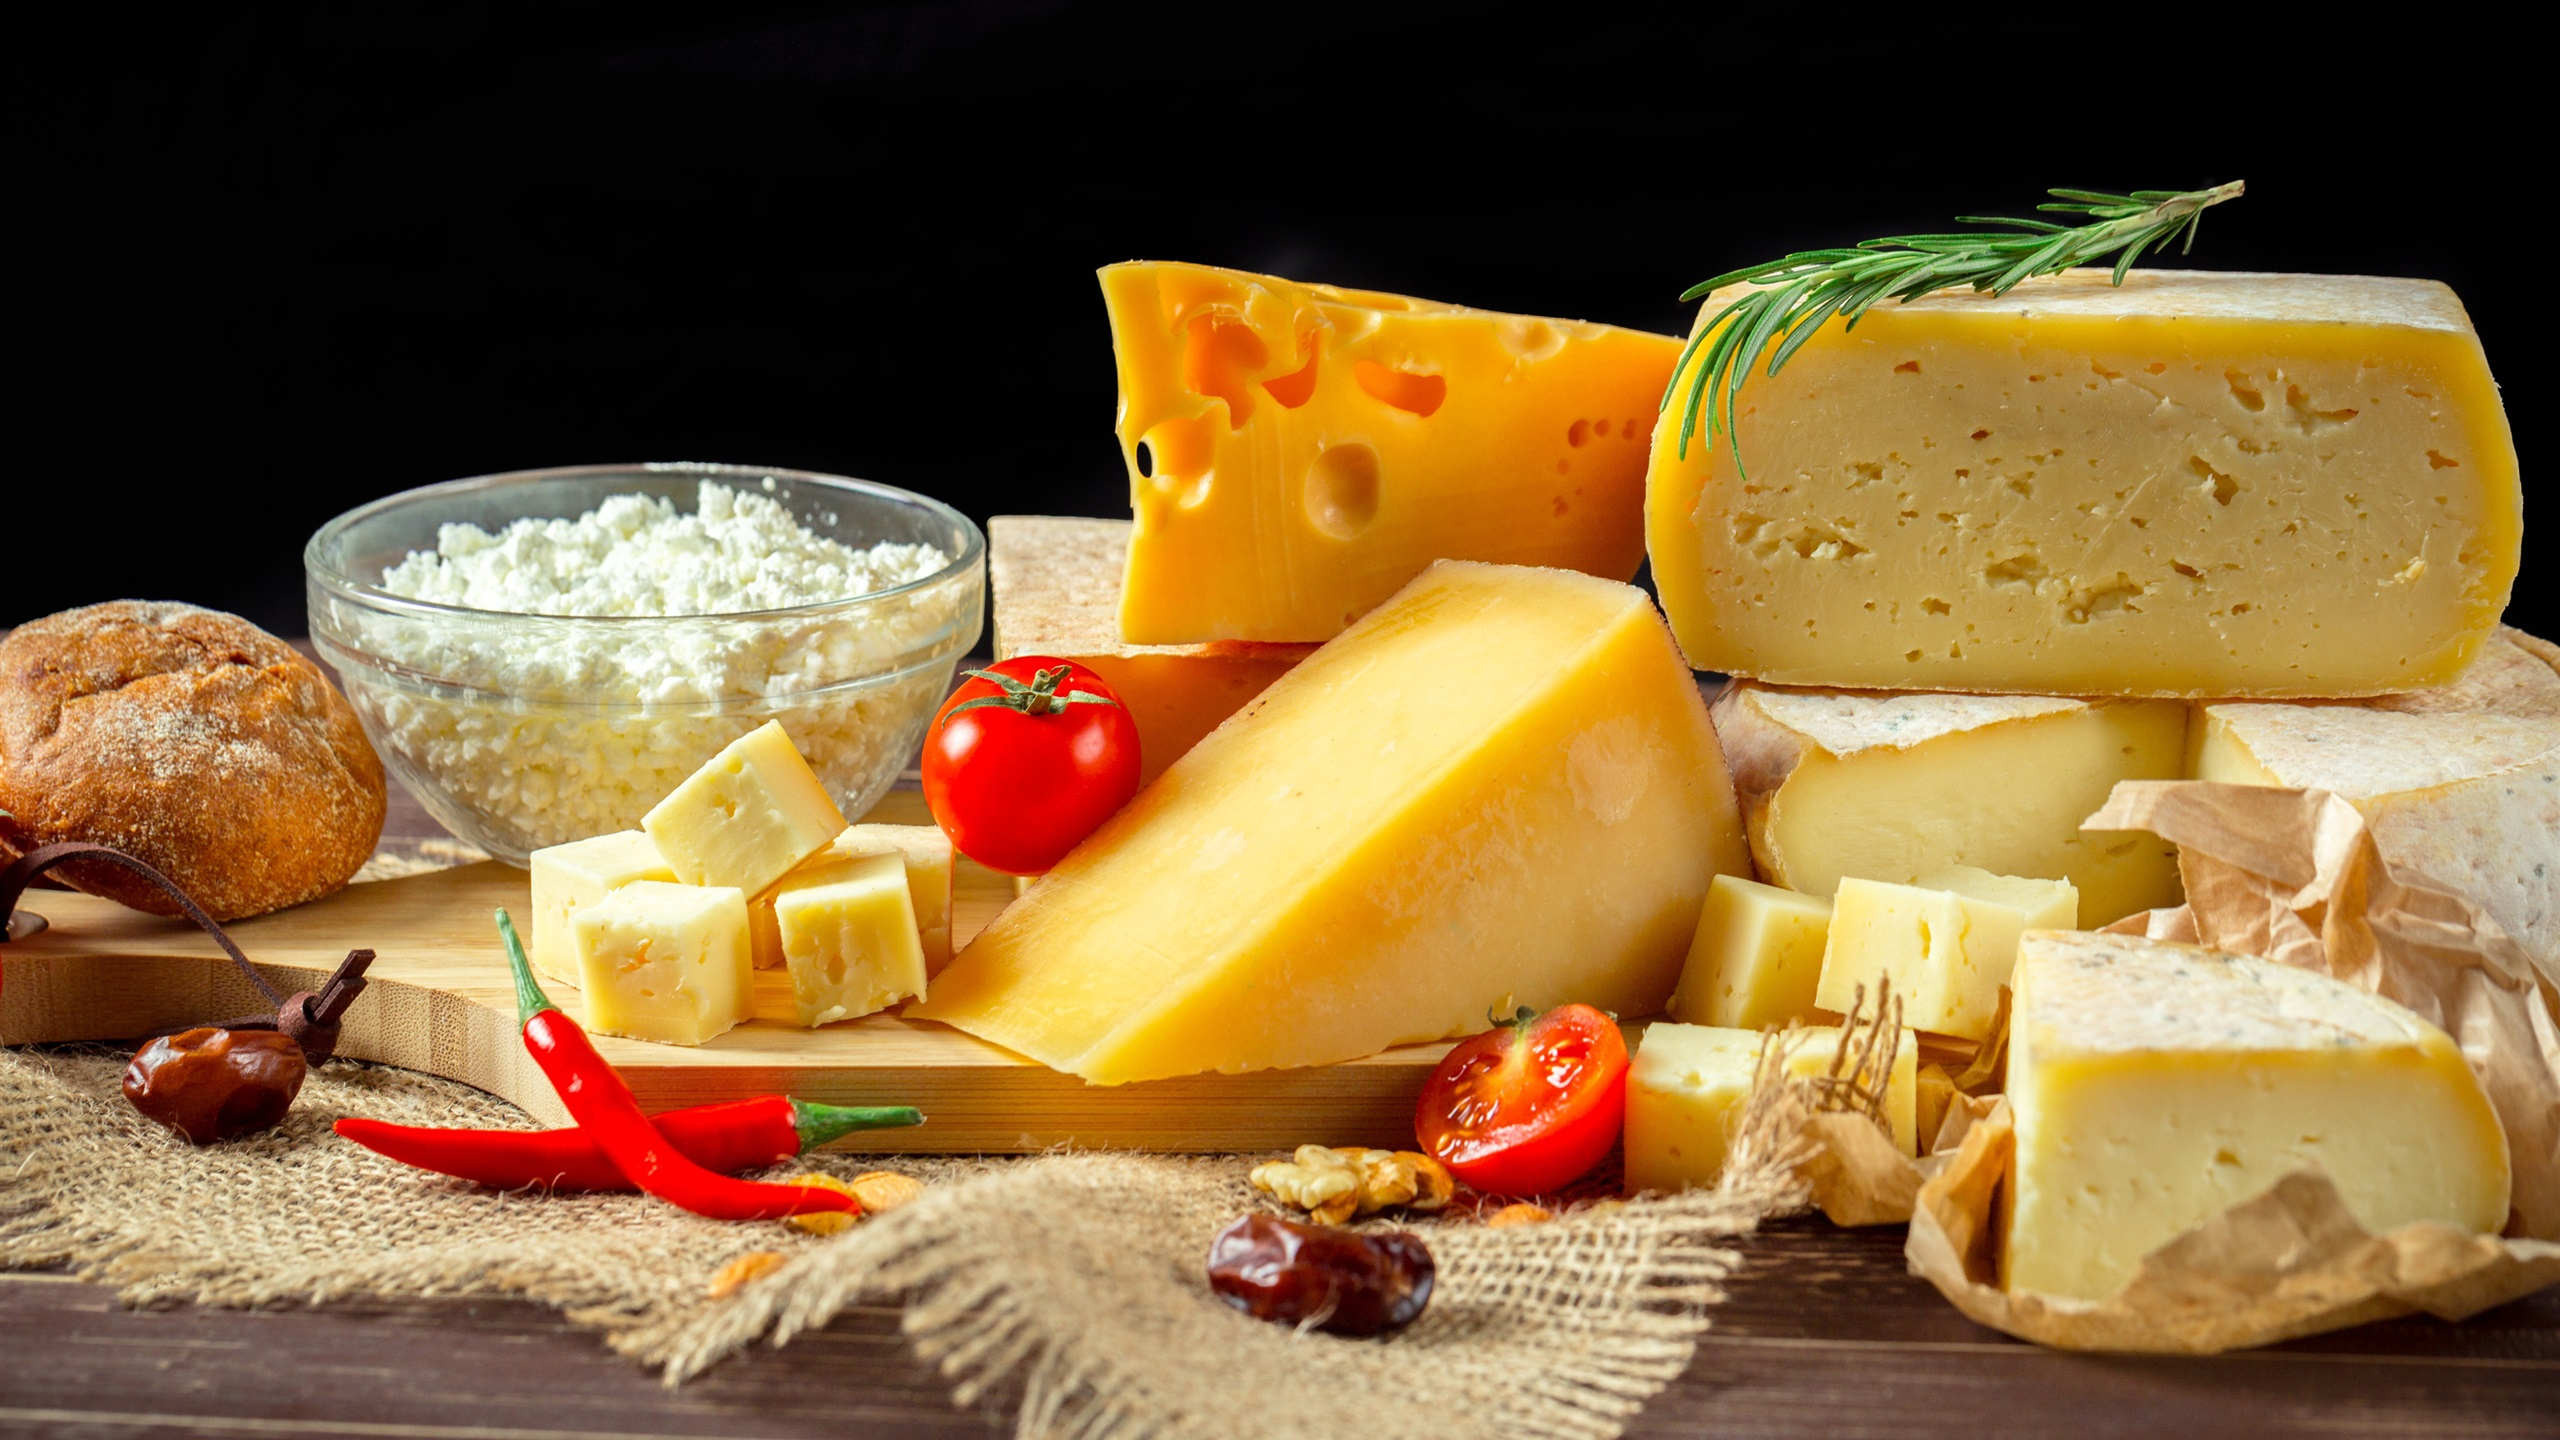 Cheese-dairy-products-tomato-pepper_2560